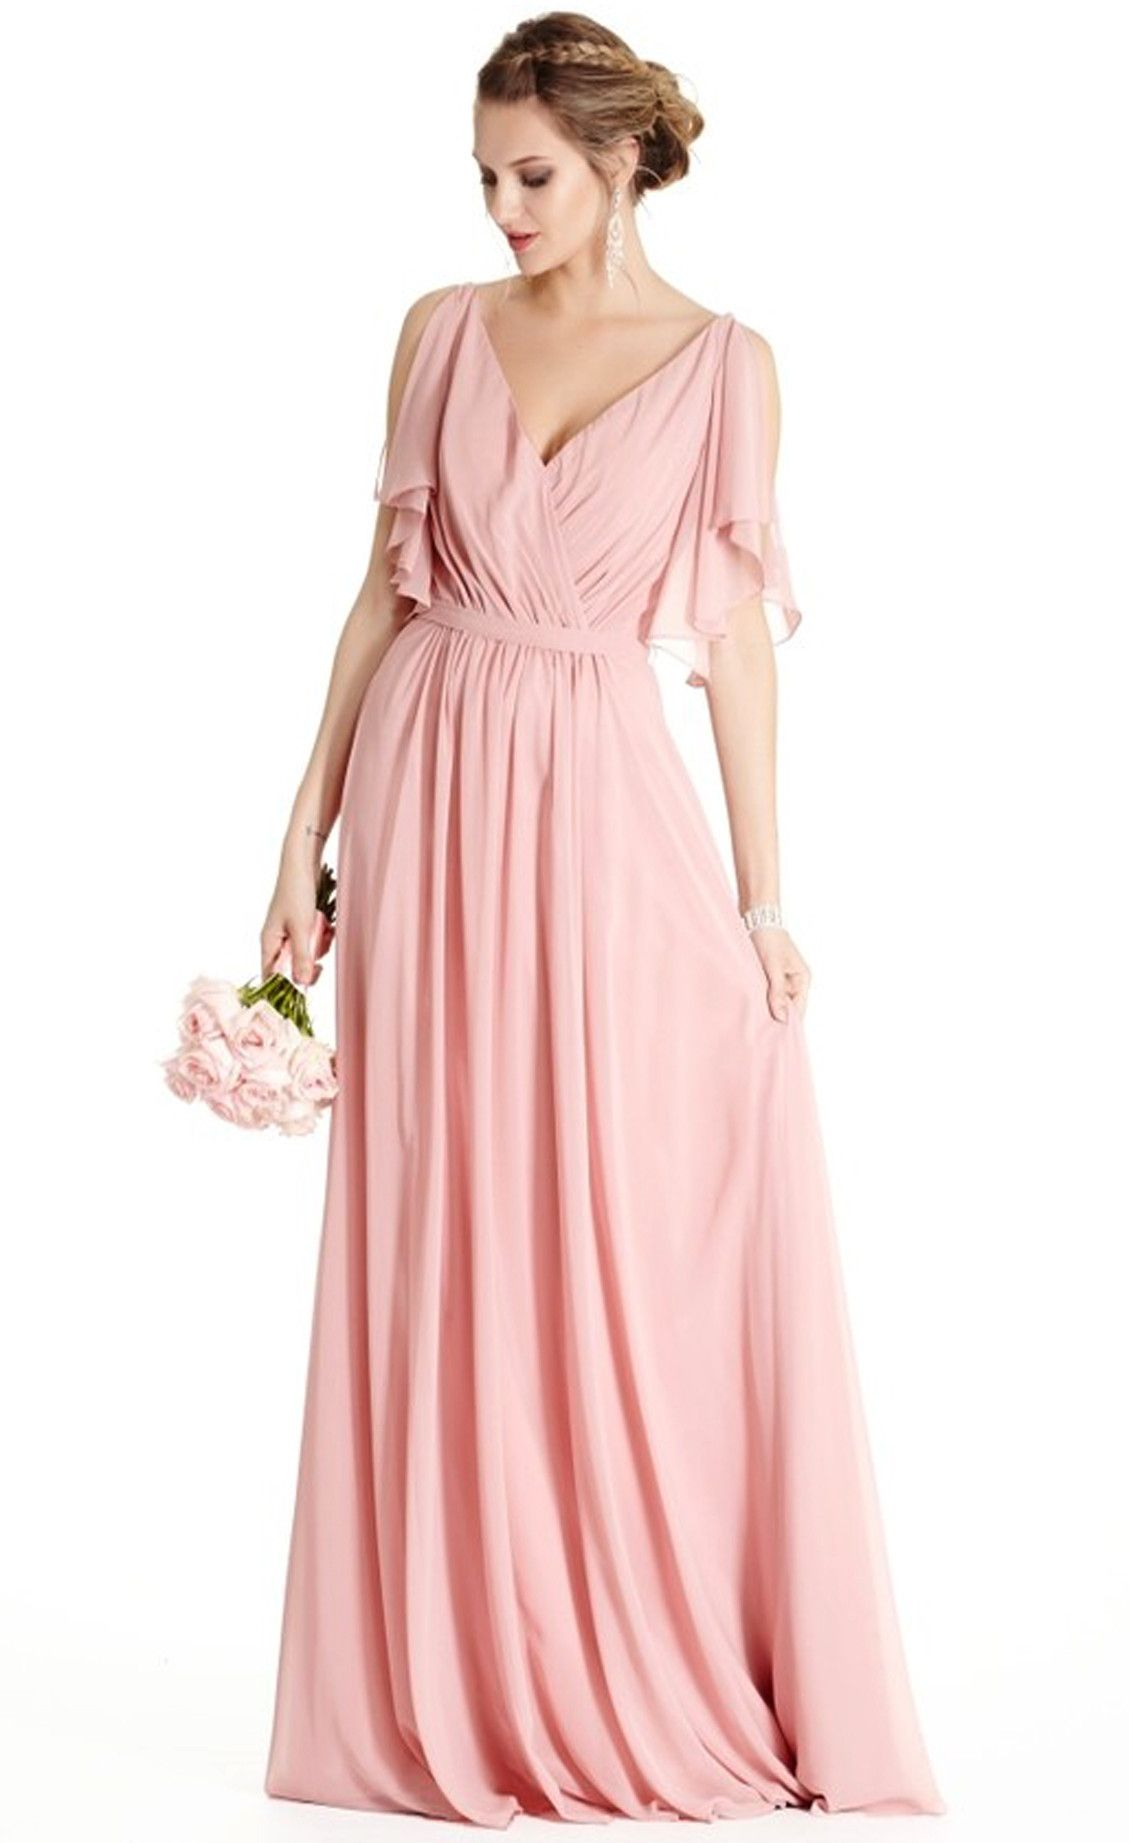 Serendipity Blush Flutter Sleeve Bridesmaids Dress | Comunión ...